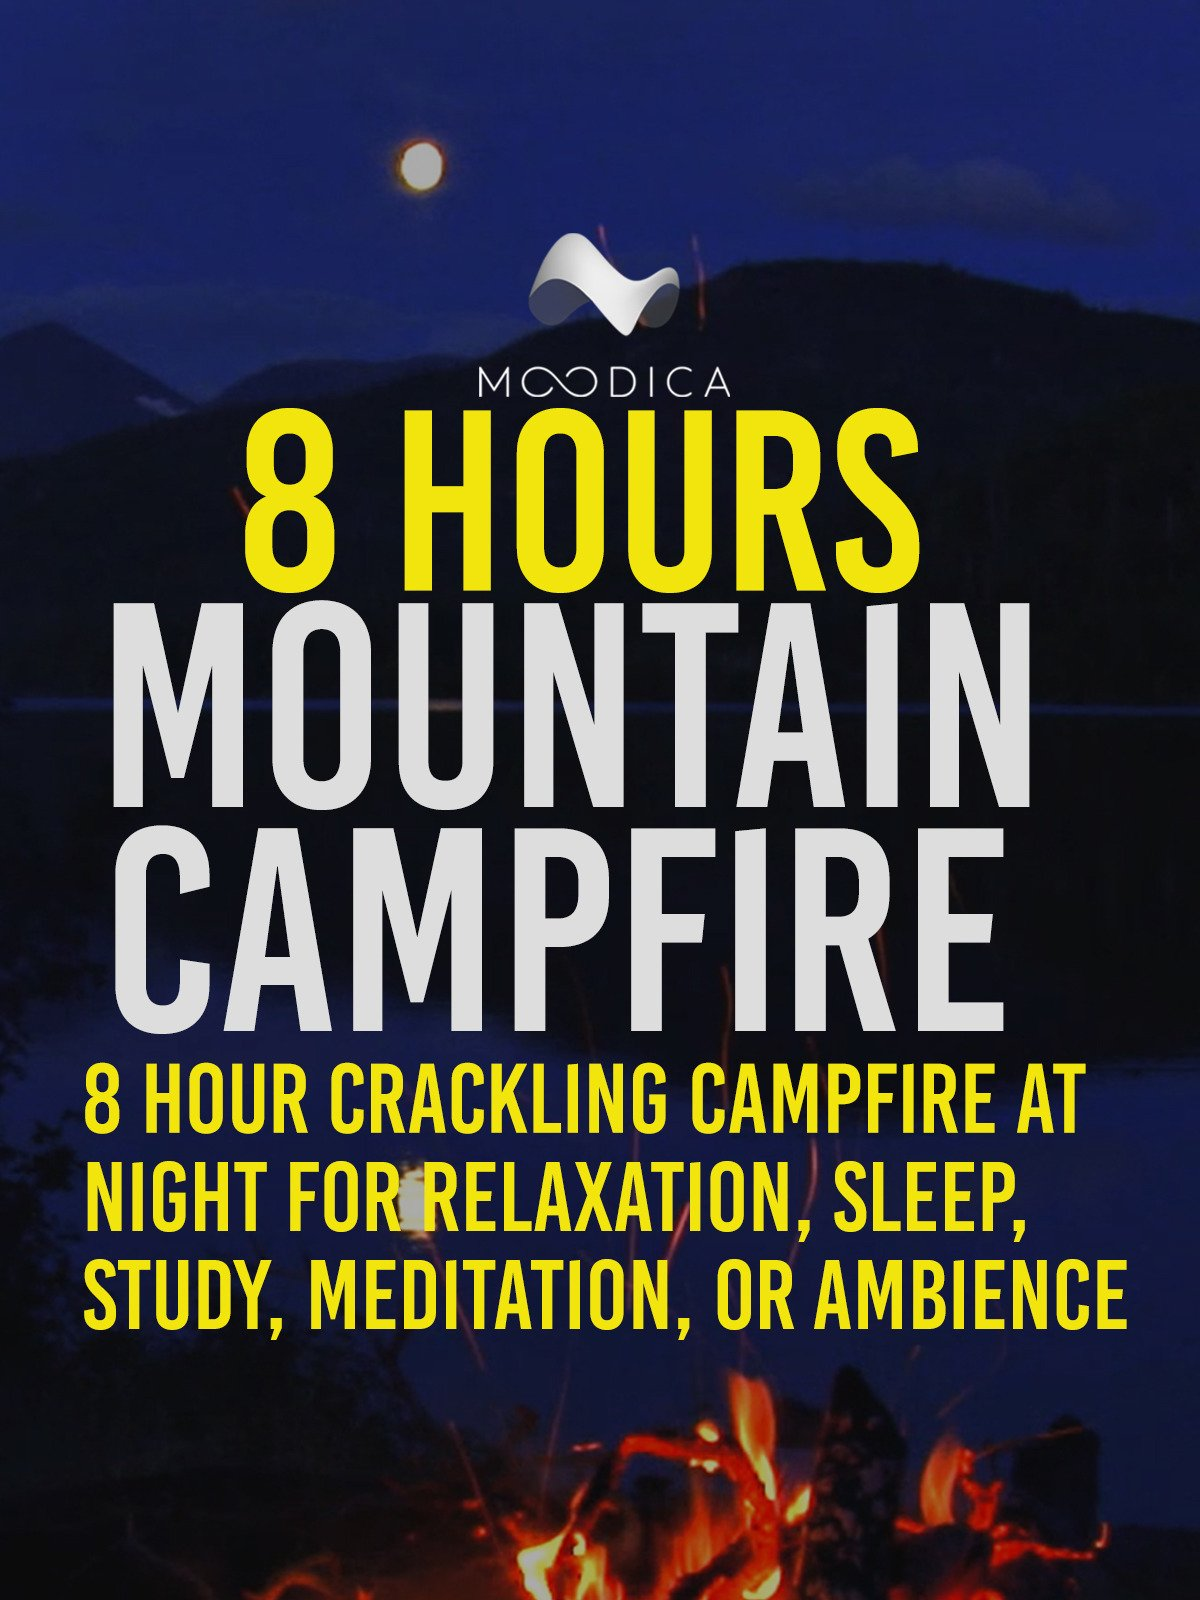 8 Hours: Mountain Campfire: 8 Hour Crackling Campfire At Nigh For Relaxation, Sleep, Study, Meditation, or Ambience